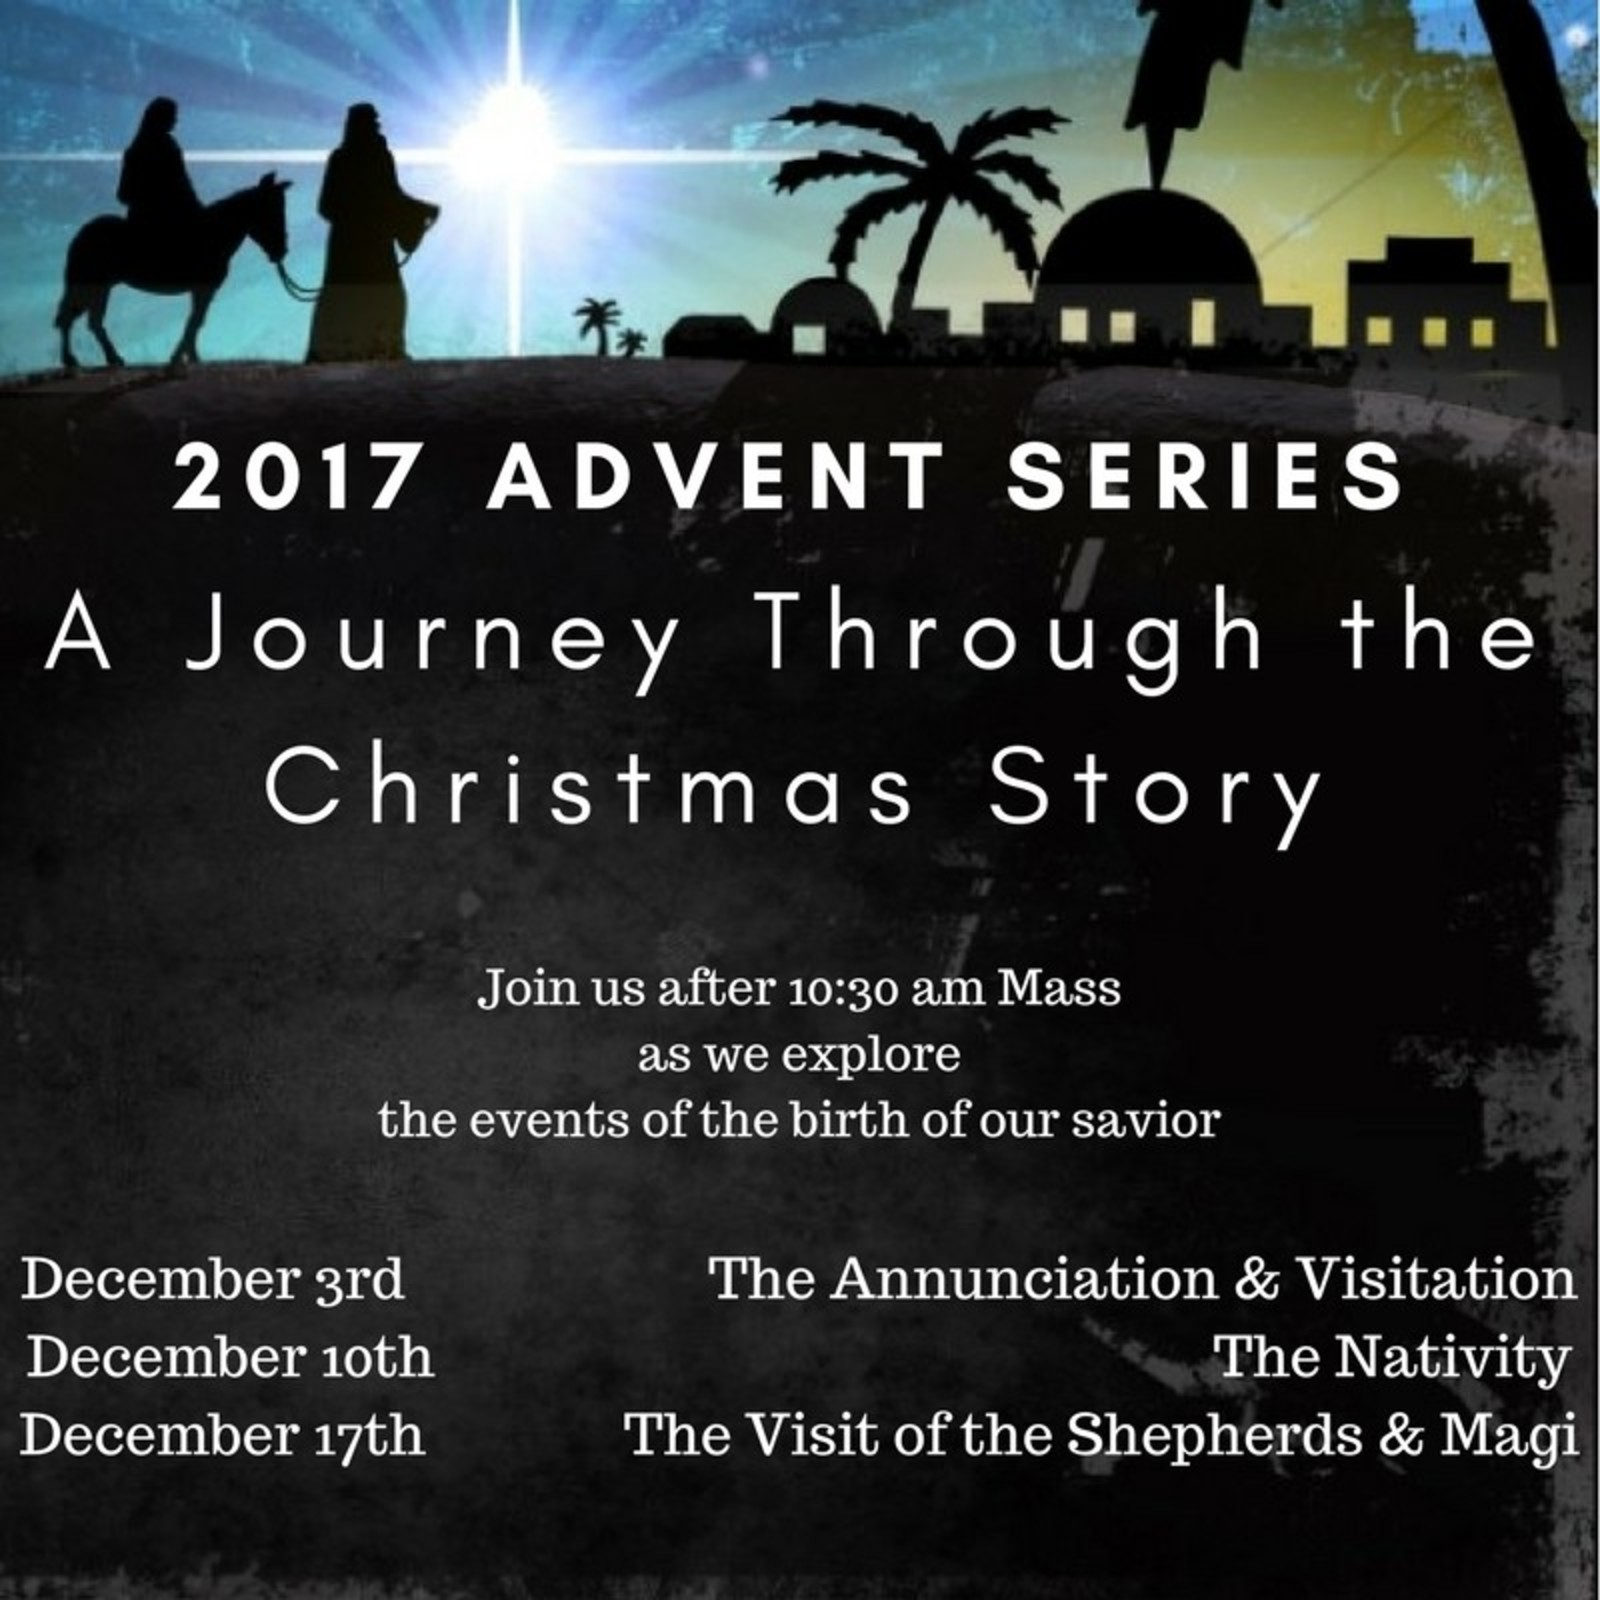 2017 Advent Series Ad